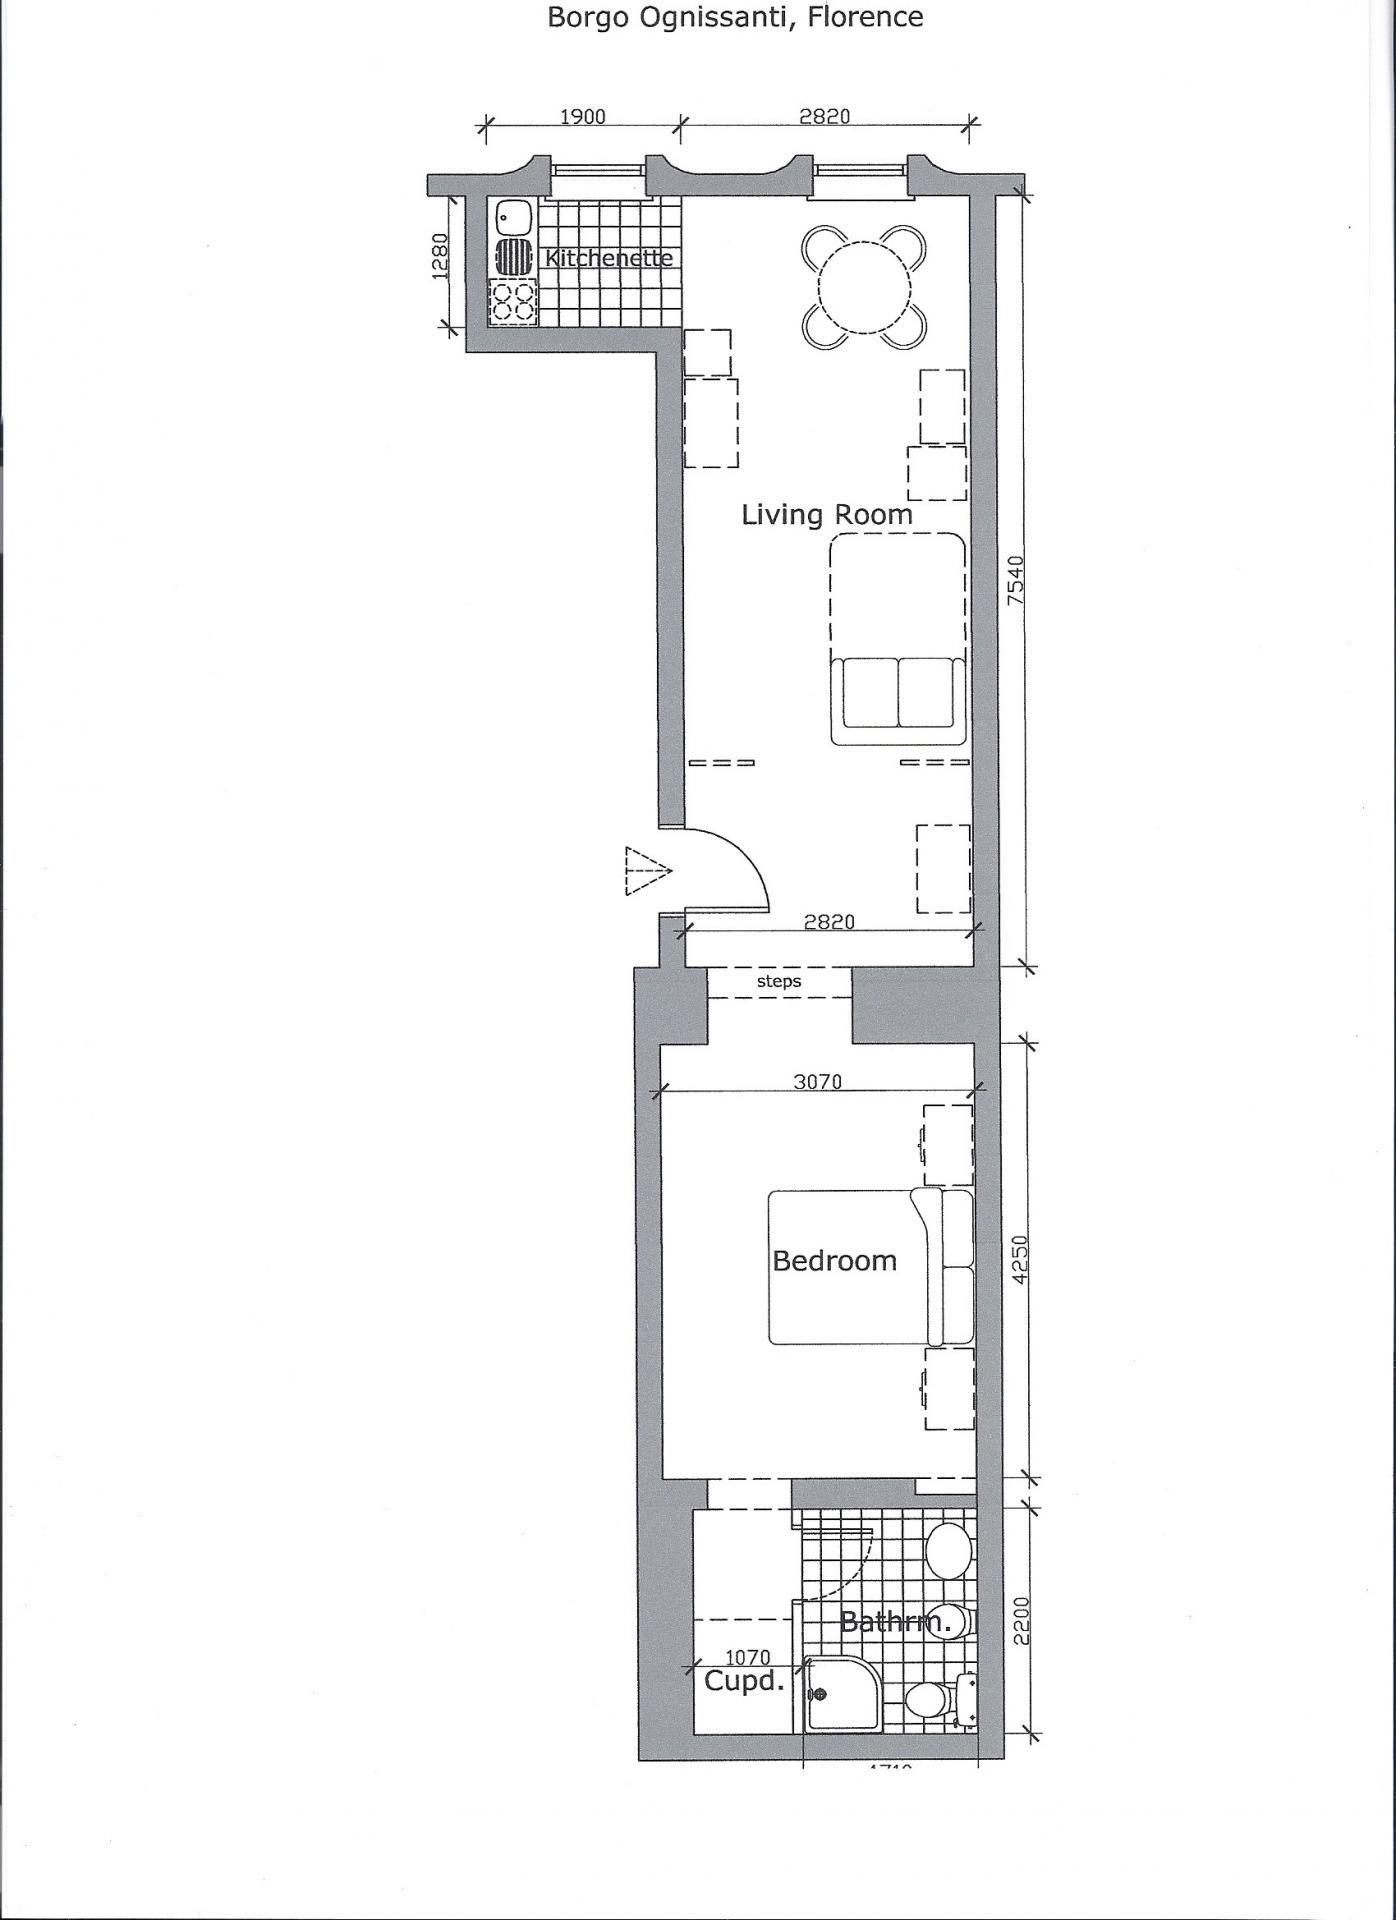 Floor plan for Borgo Ognissanti Apartment, Centre, Florence